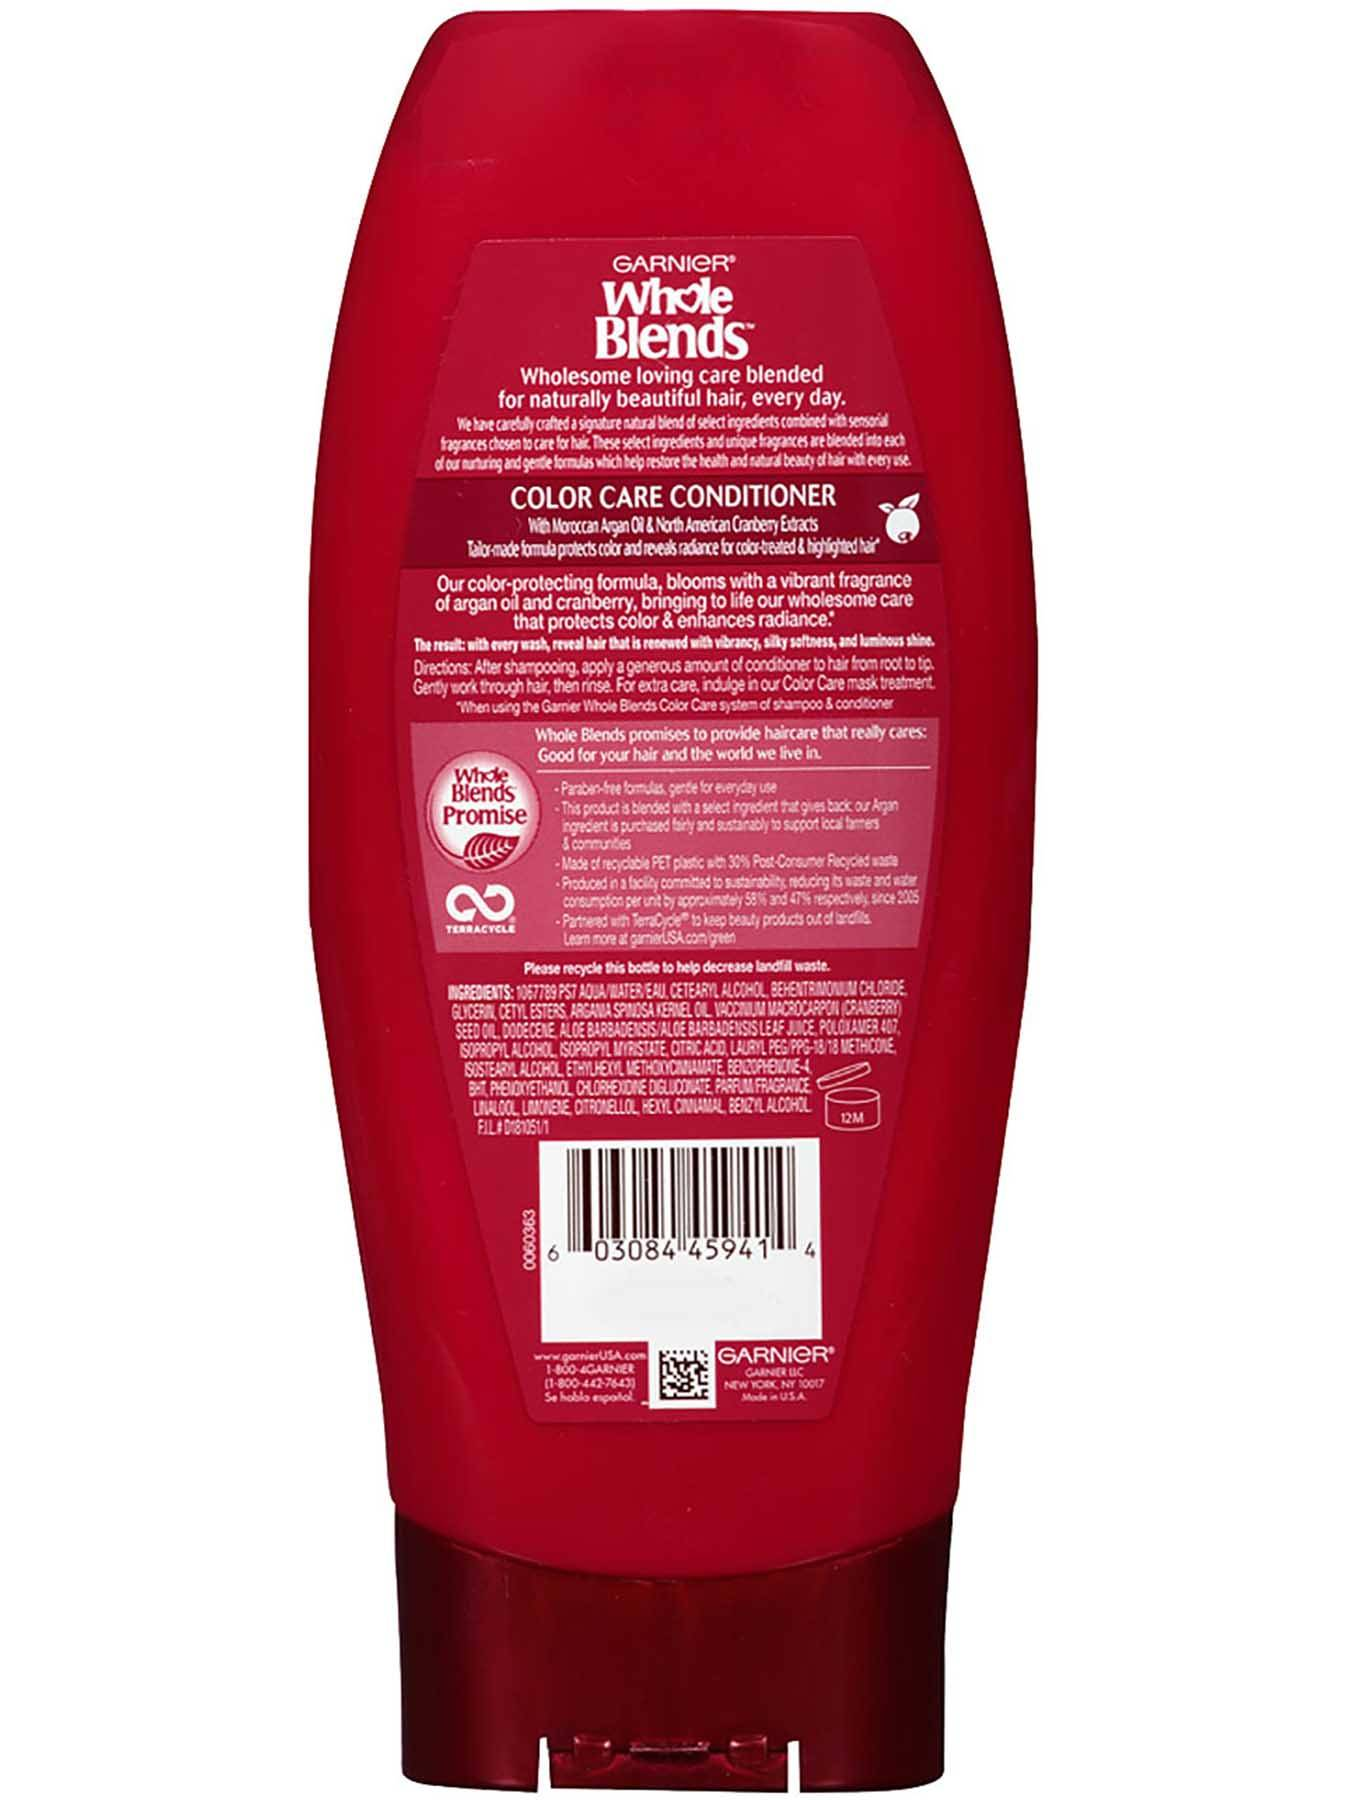 Back view of Color Care Conditioner with Argan Oil and Cranberry Extracts.